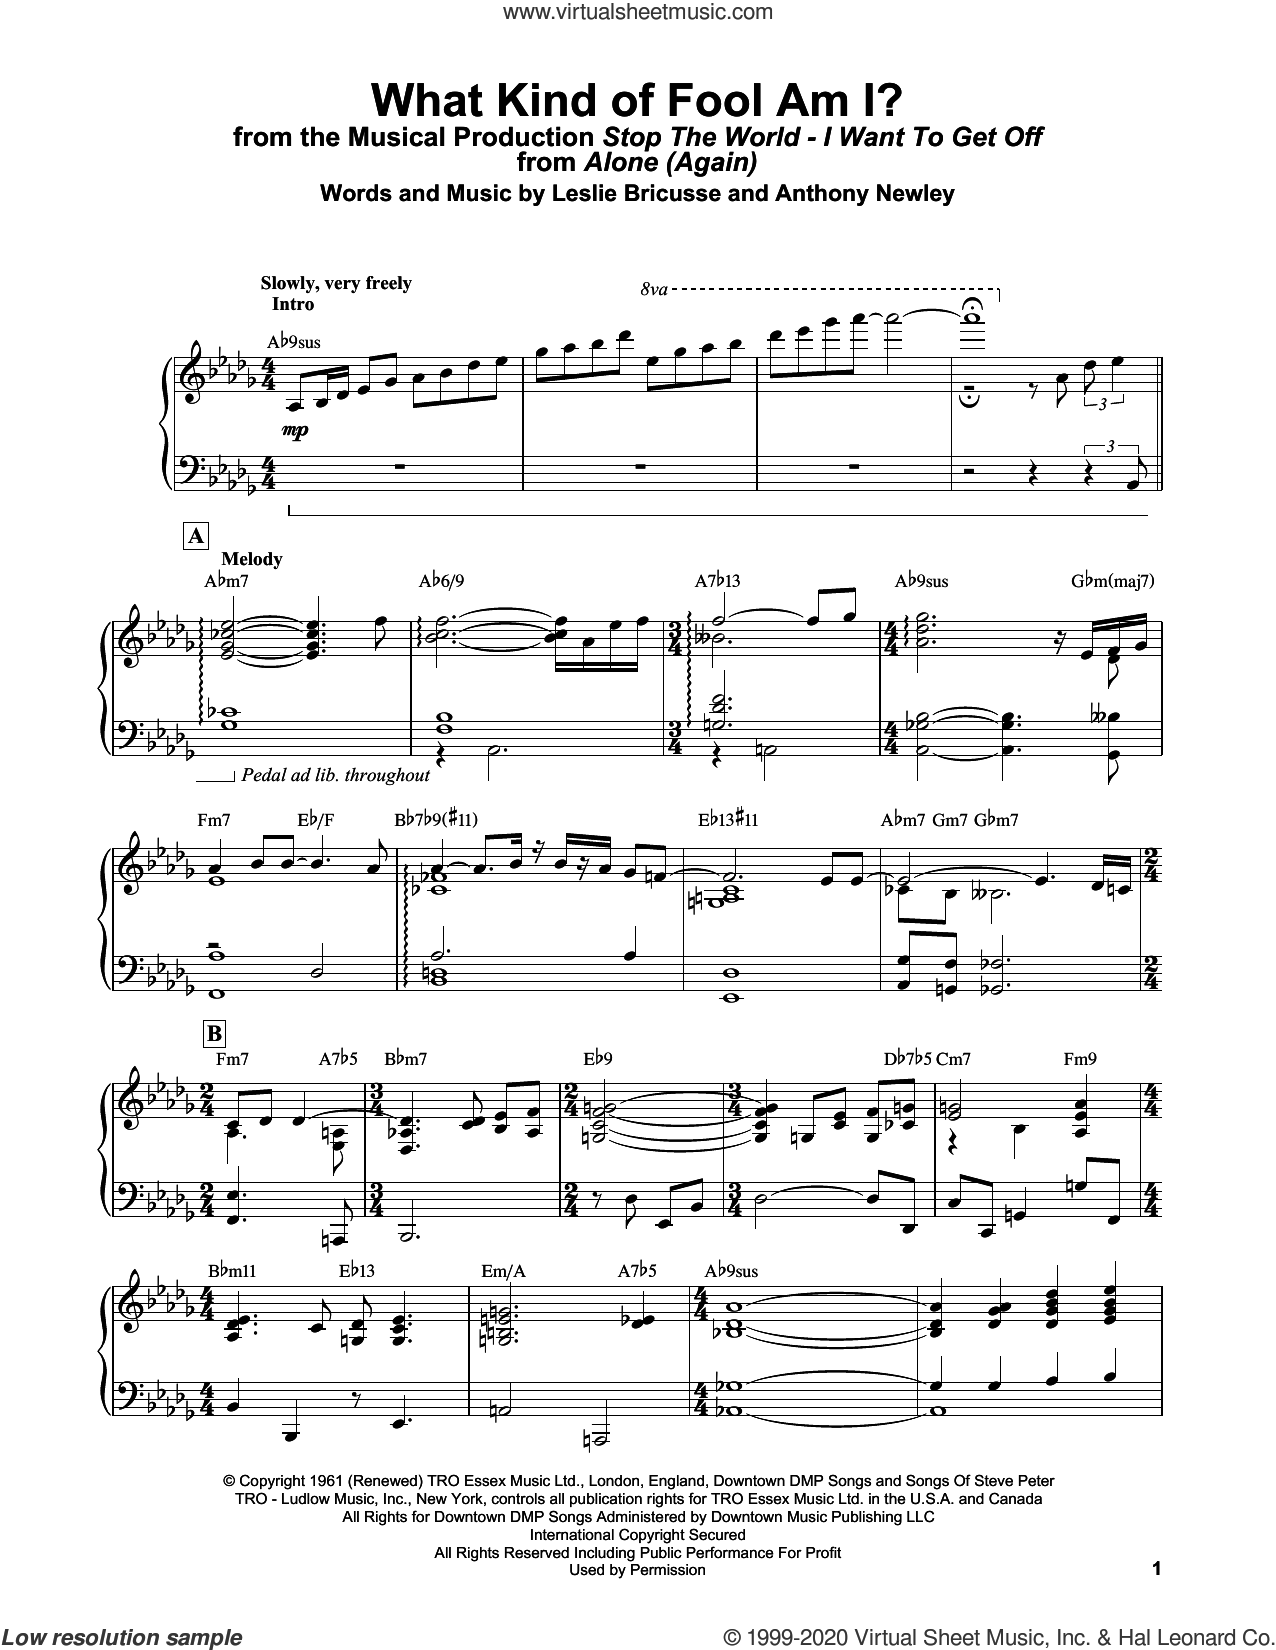 What Kind Of Fool Am I? (from Stop The World - I Want To Get Off) sheet music for piano solo by Bill Evans, Anthony Newley and Leslie Bricusse, intermediate skill level